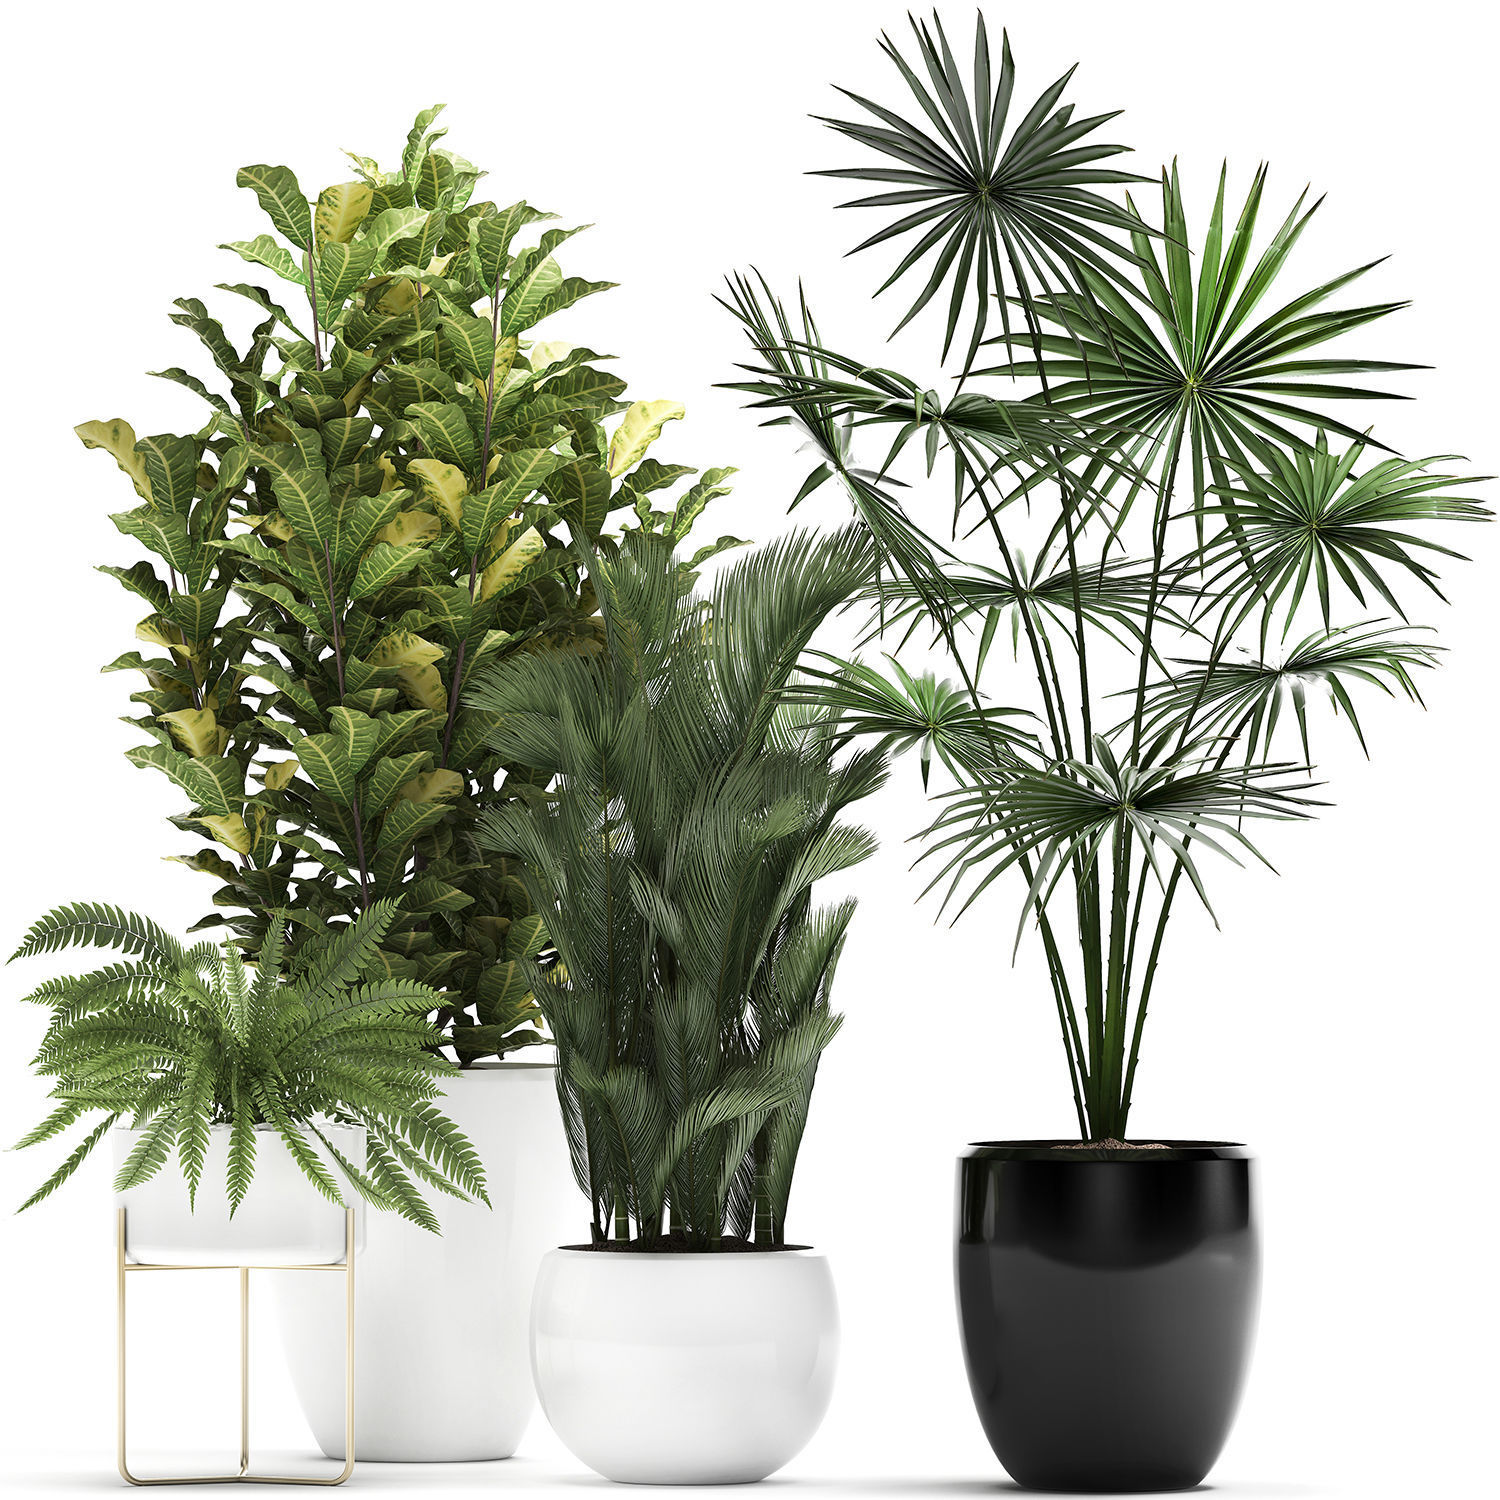 Collection Of Decorative Plants Trees In Pots For Home 3d